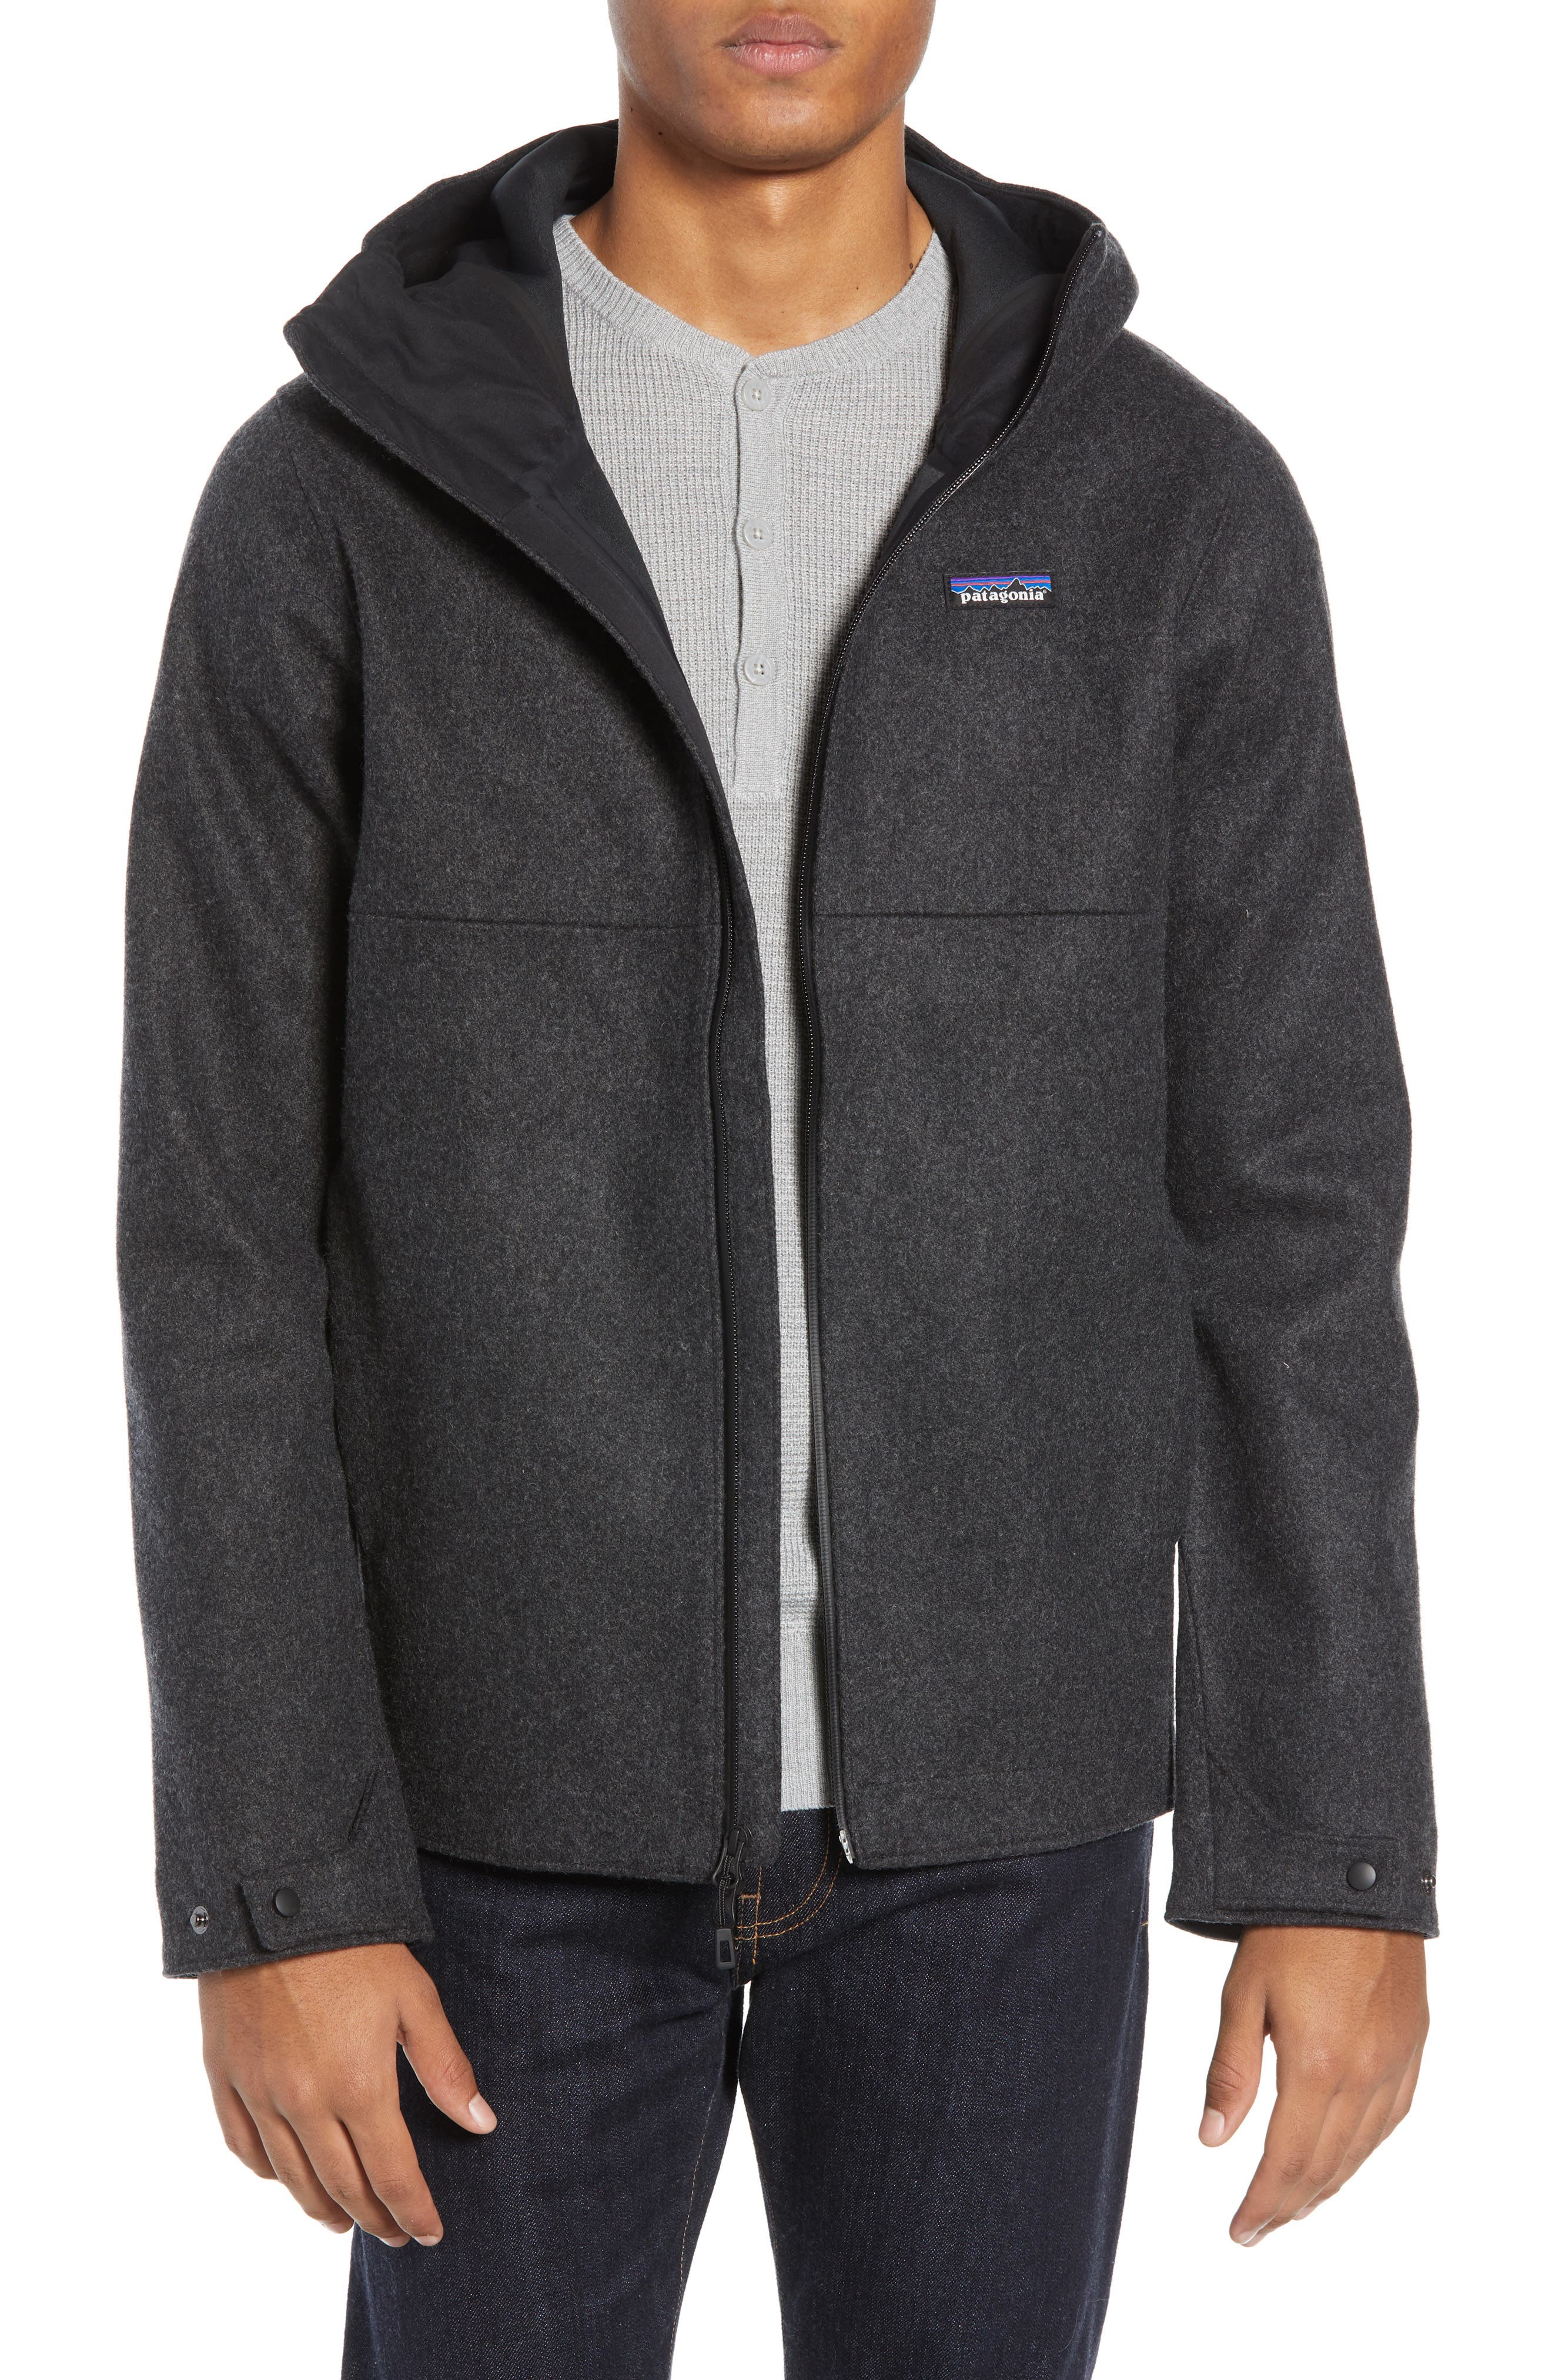 Woolyester Hooded Jacket,                             Main thumbnail 1, color,                             FORGE GREY